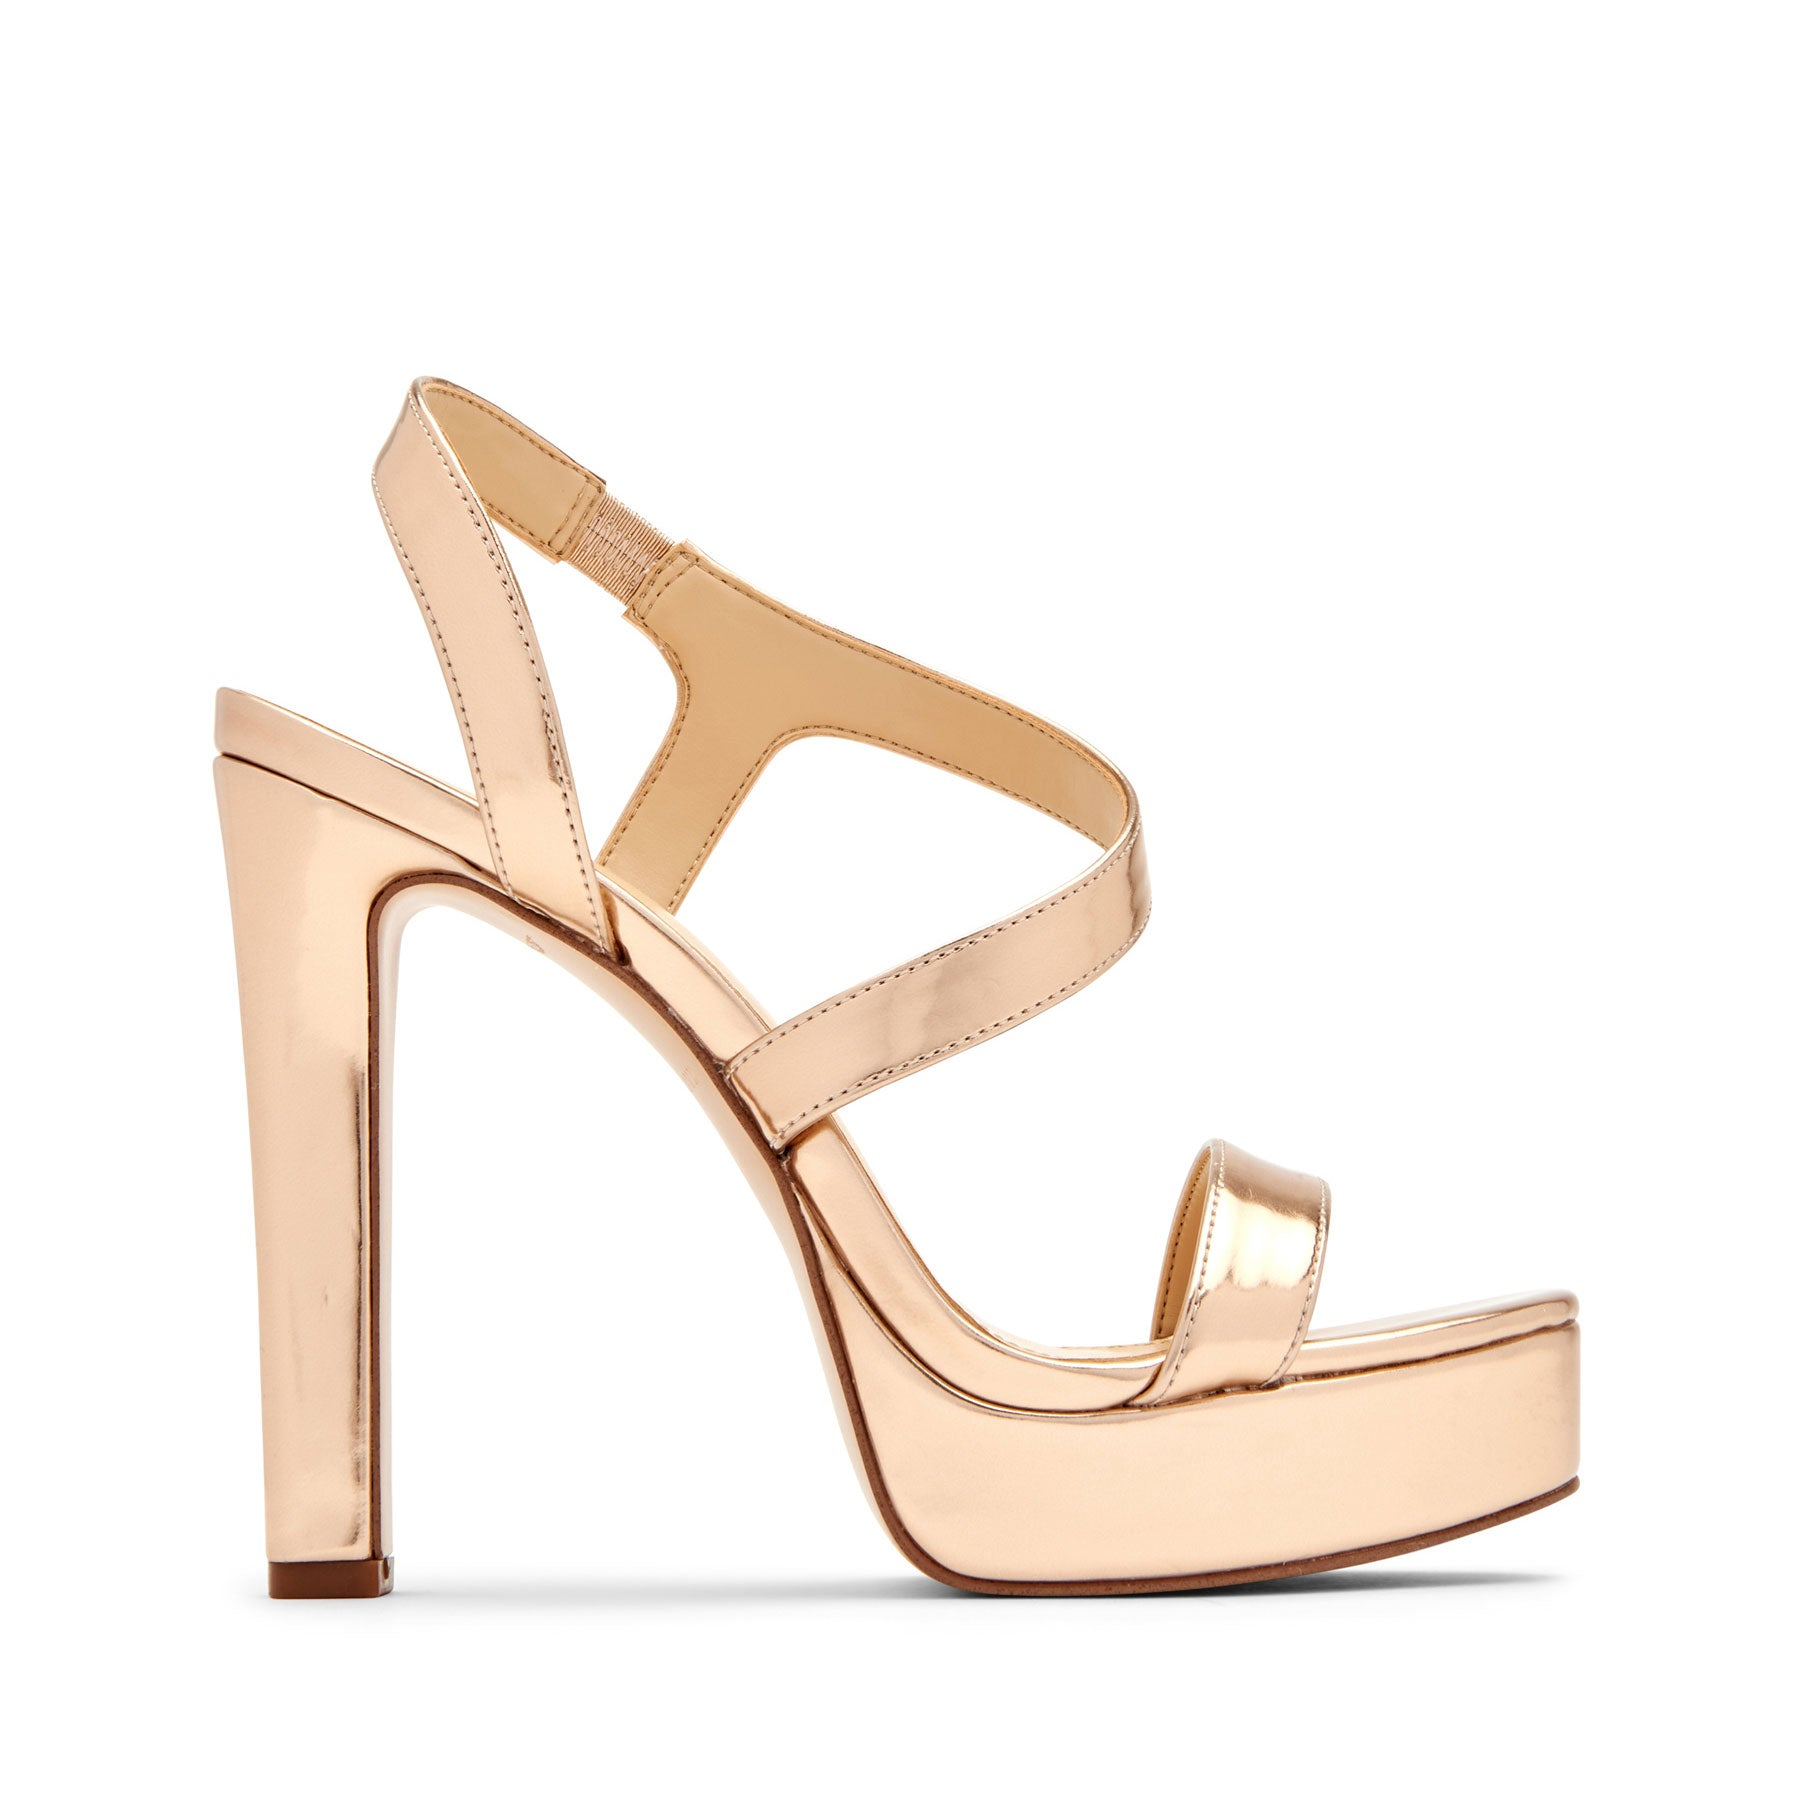 katy perry strappy sandal metallic in champagne size 8   the naomi